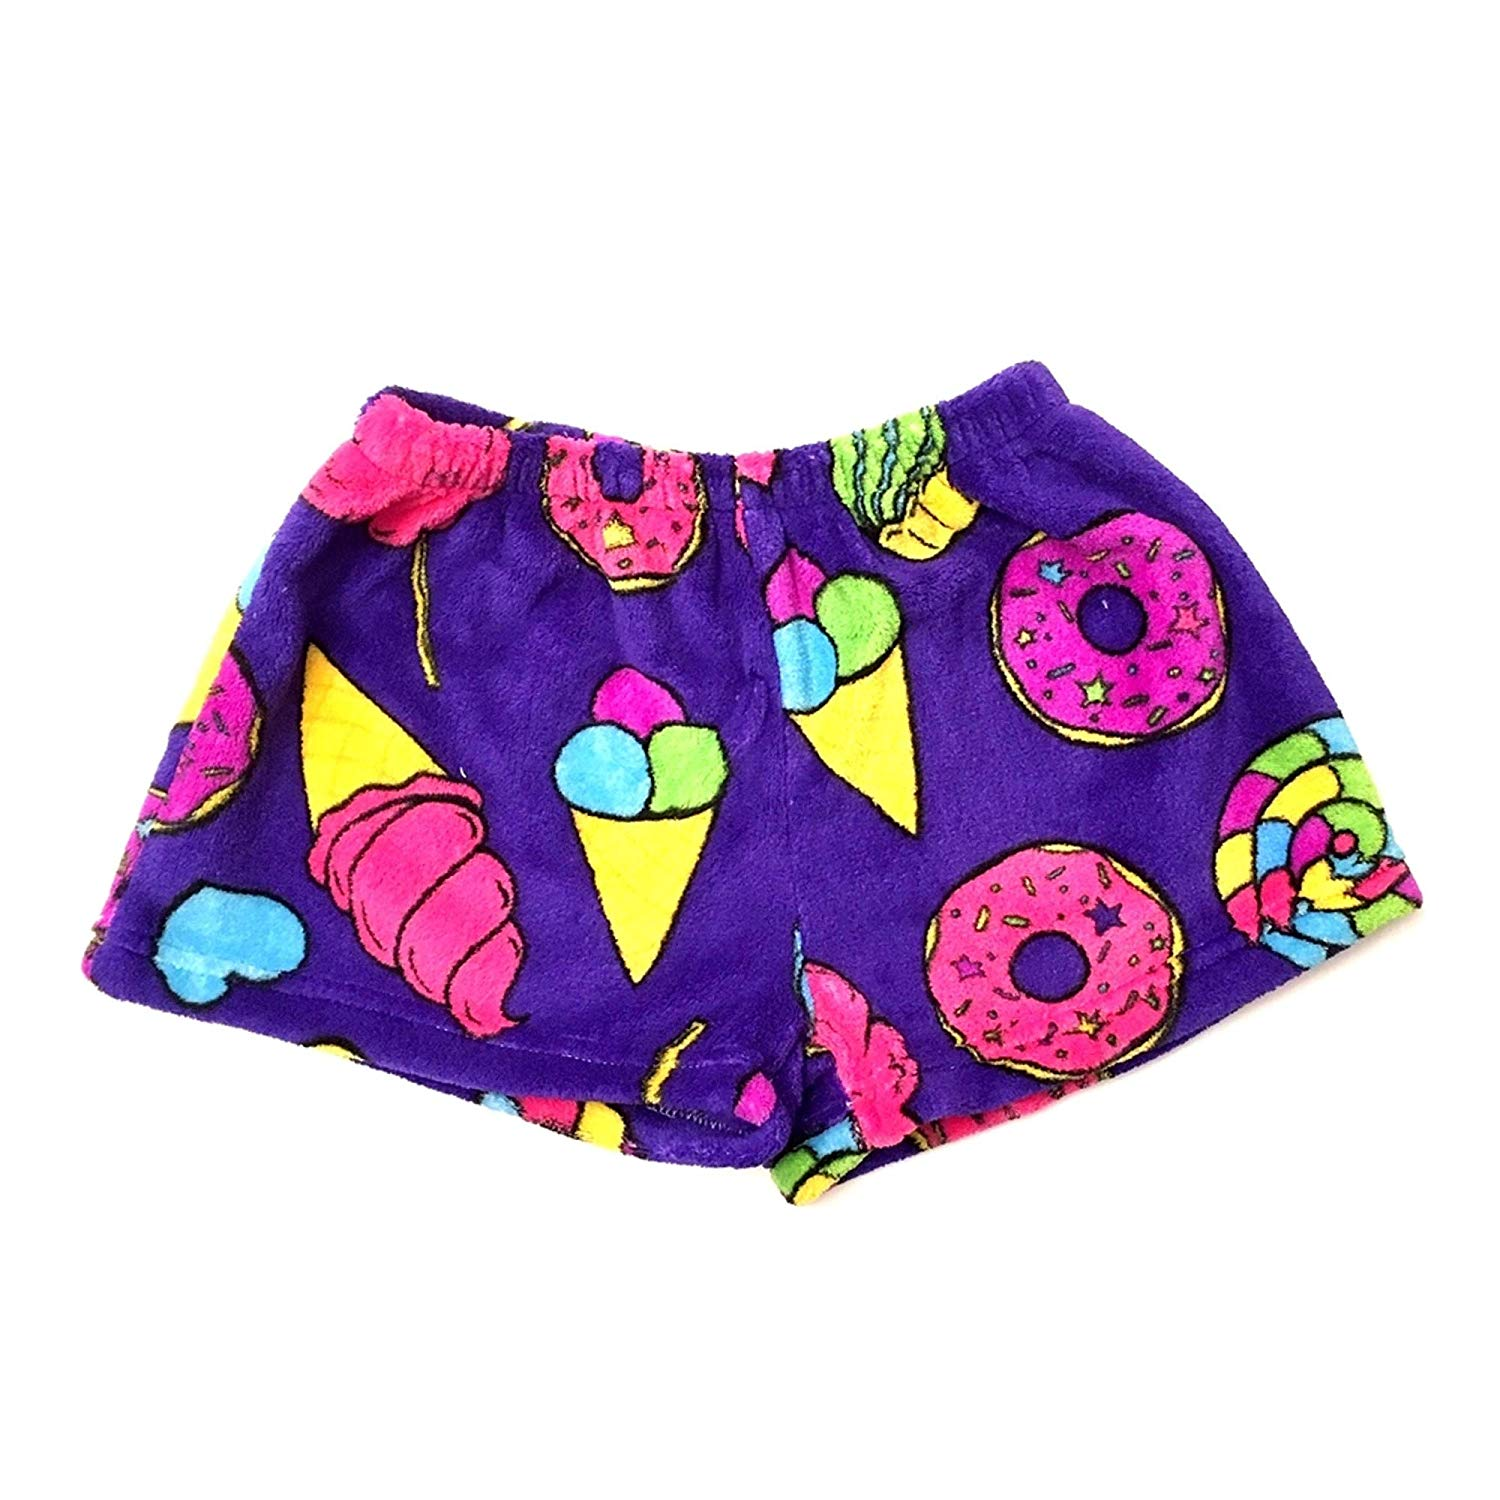 Popular Girl's Fuzzy Fleece Pajama Shorts 100% Soft Polyester Sleepwear With Elastic Band Flame Resistant Kids Clothing